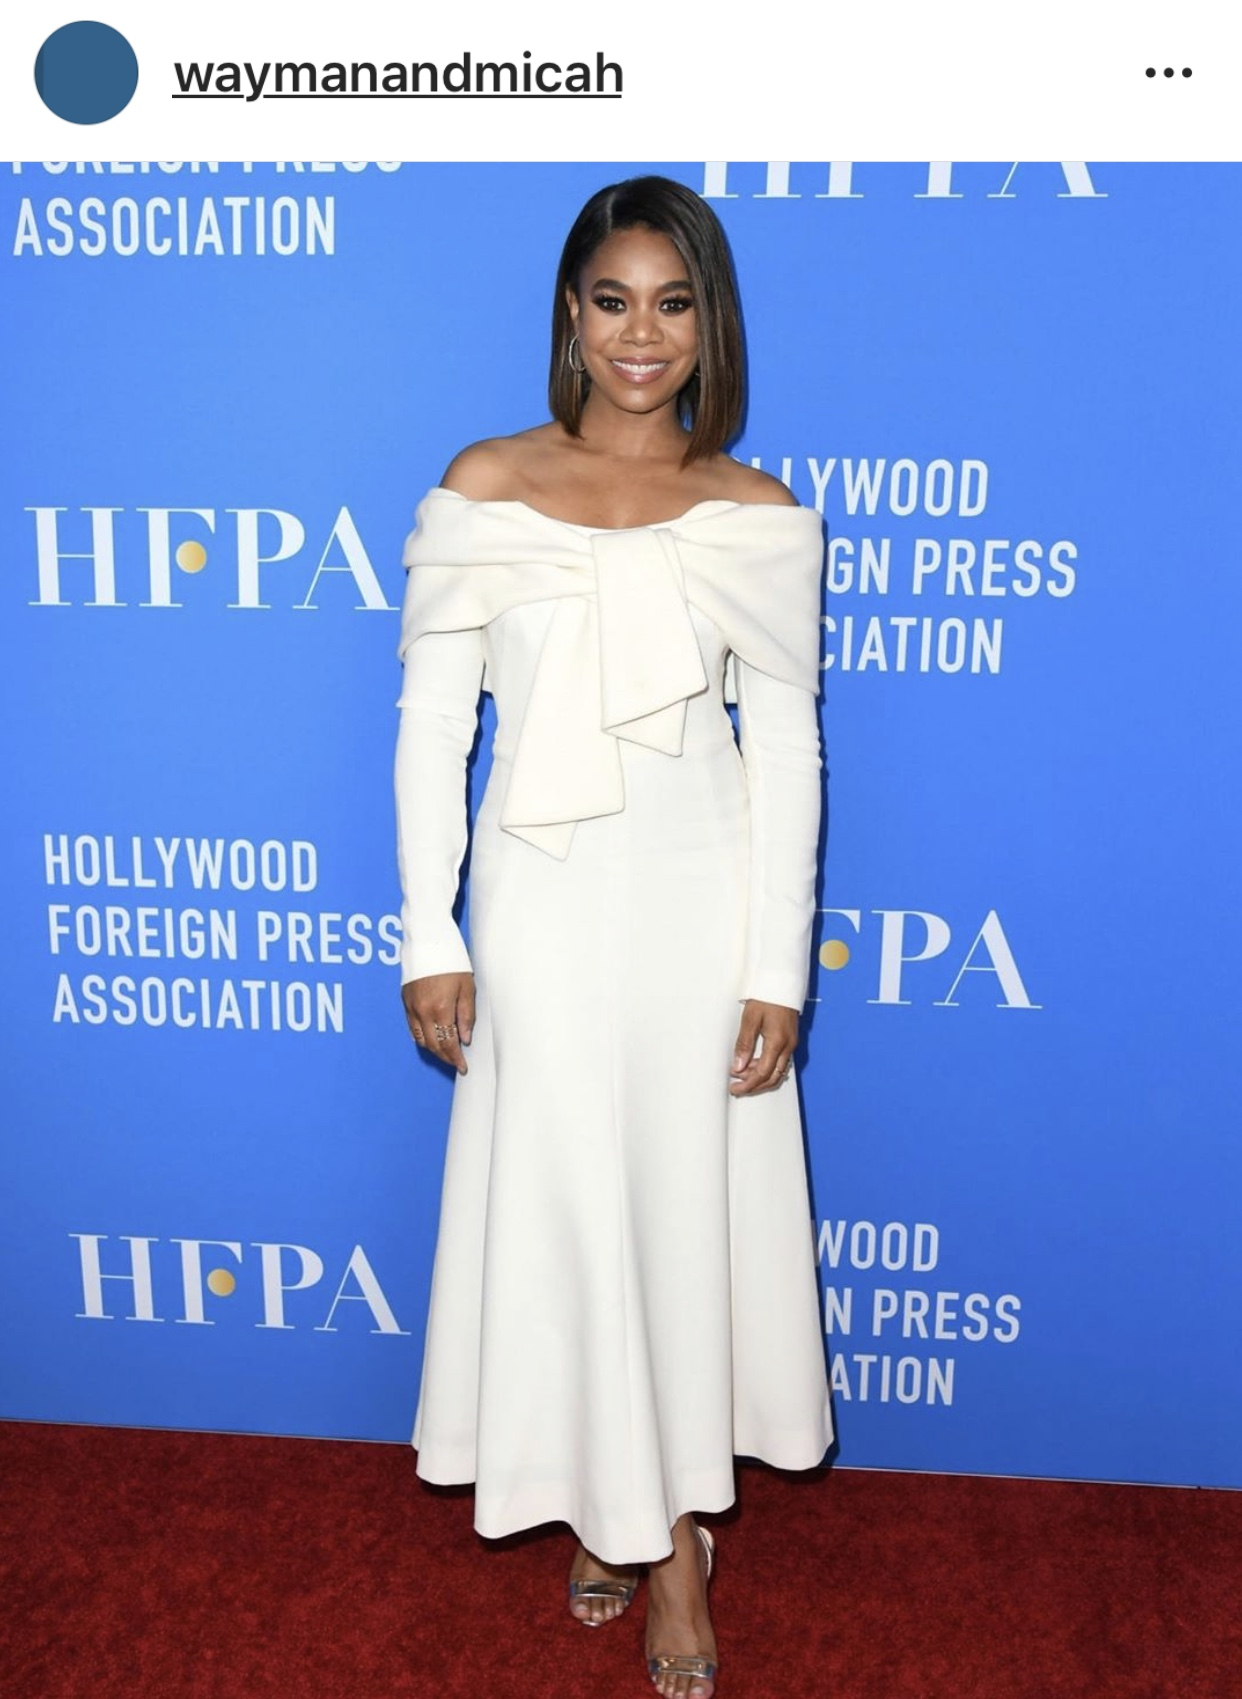 Regina-Hall-in-Lela-Rose-Best-dressed.jpg